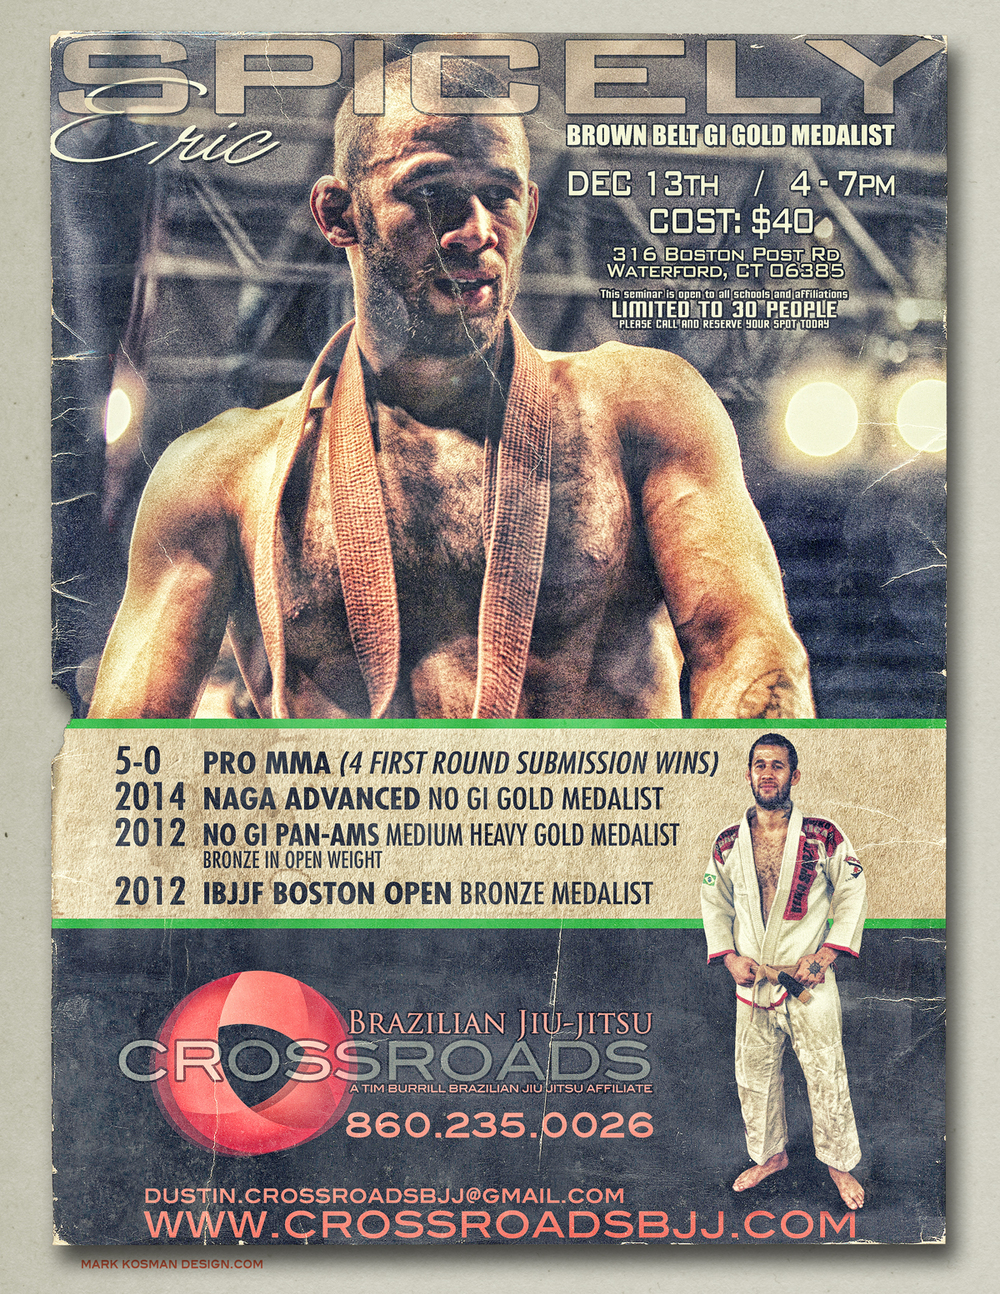 Eric Spicely Seminar in CT at Crossroads BJJ | Crossroads